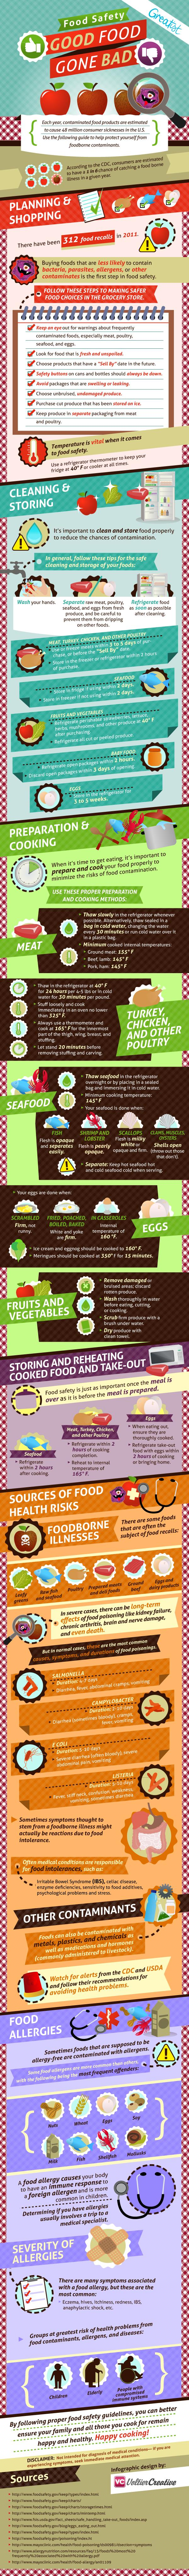 A Food Safety Chart for Safe and Correct Storage of Your Food.